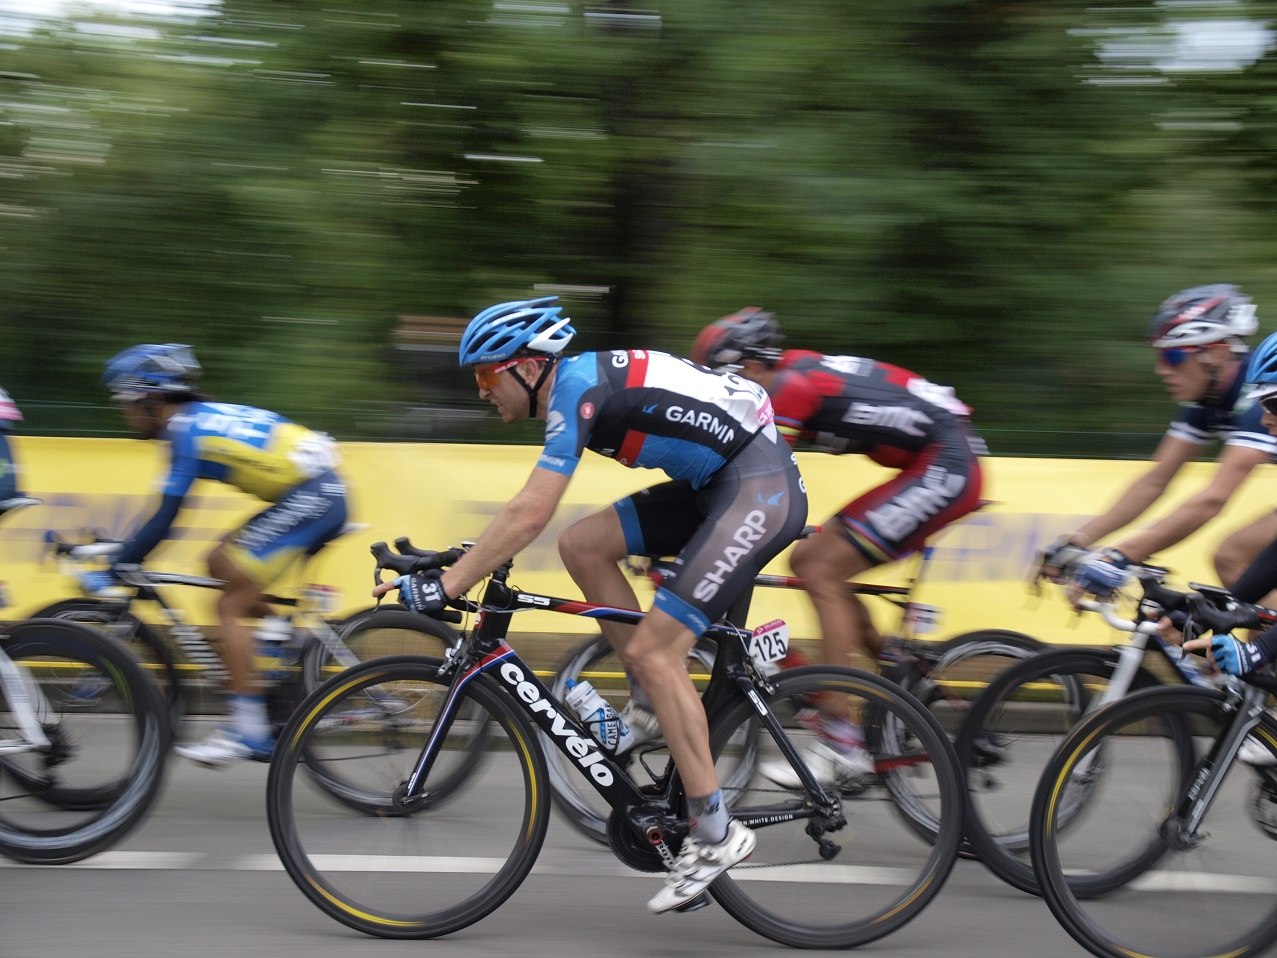 Riders race in the Tour de Pologne 2012